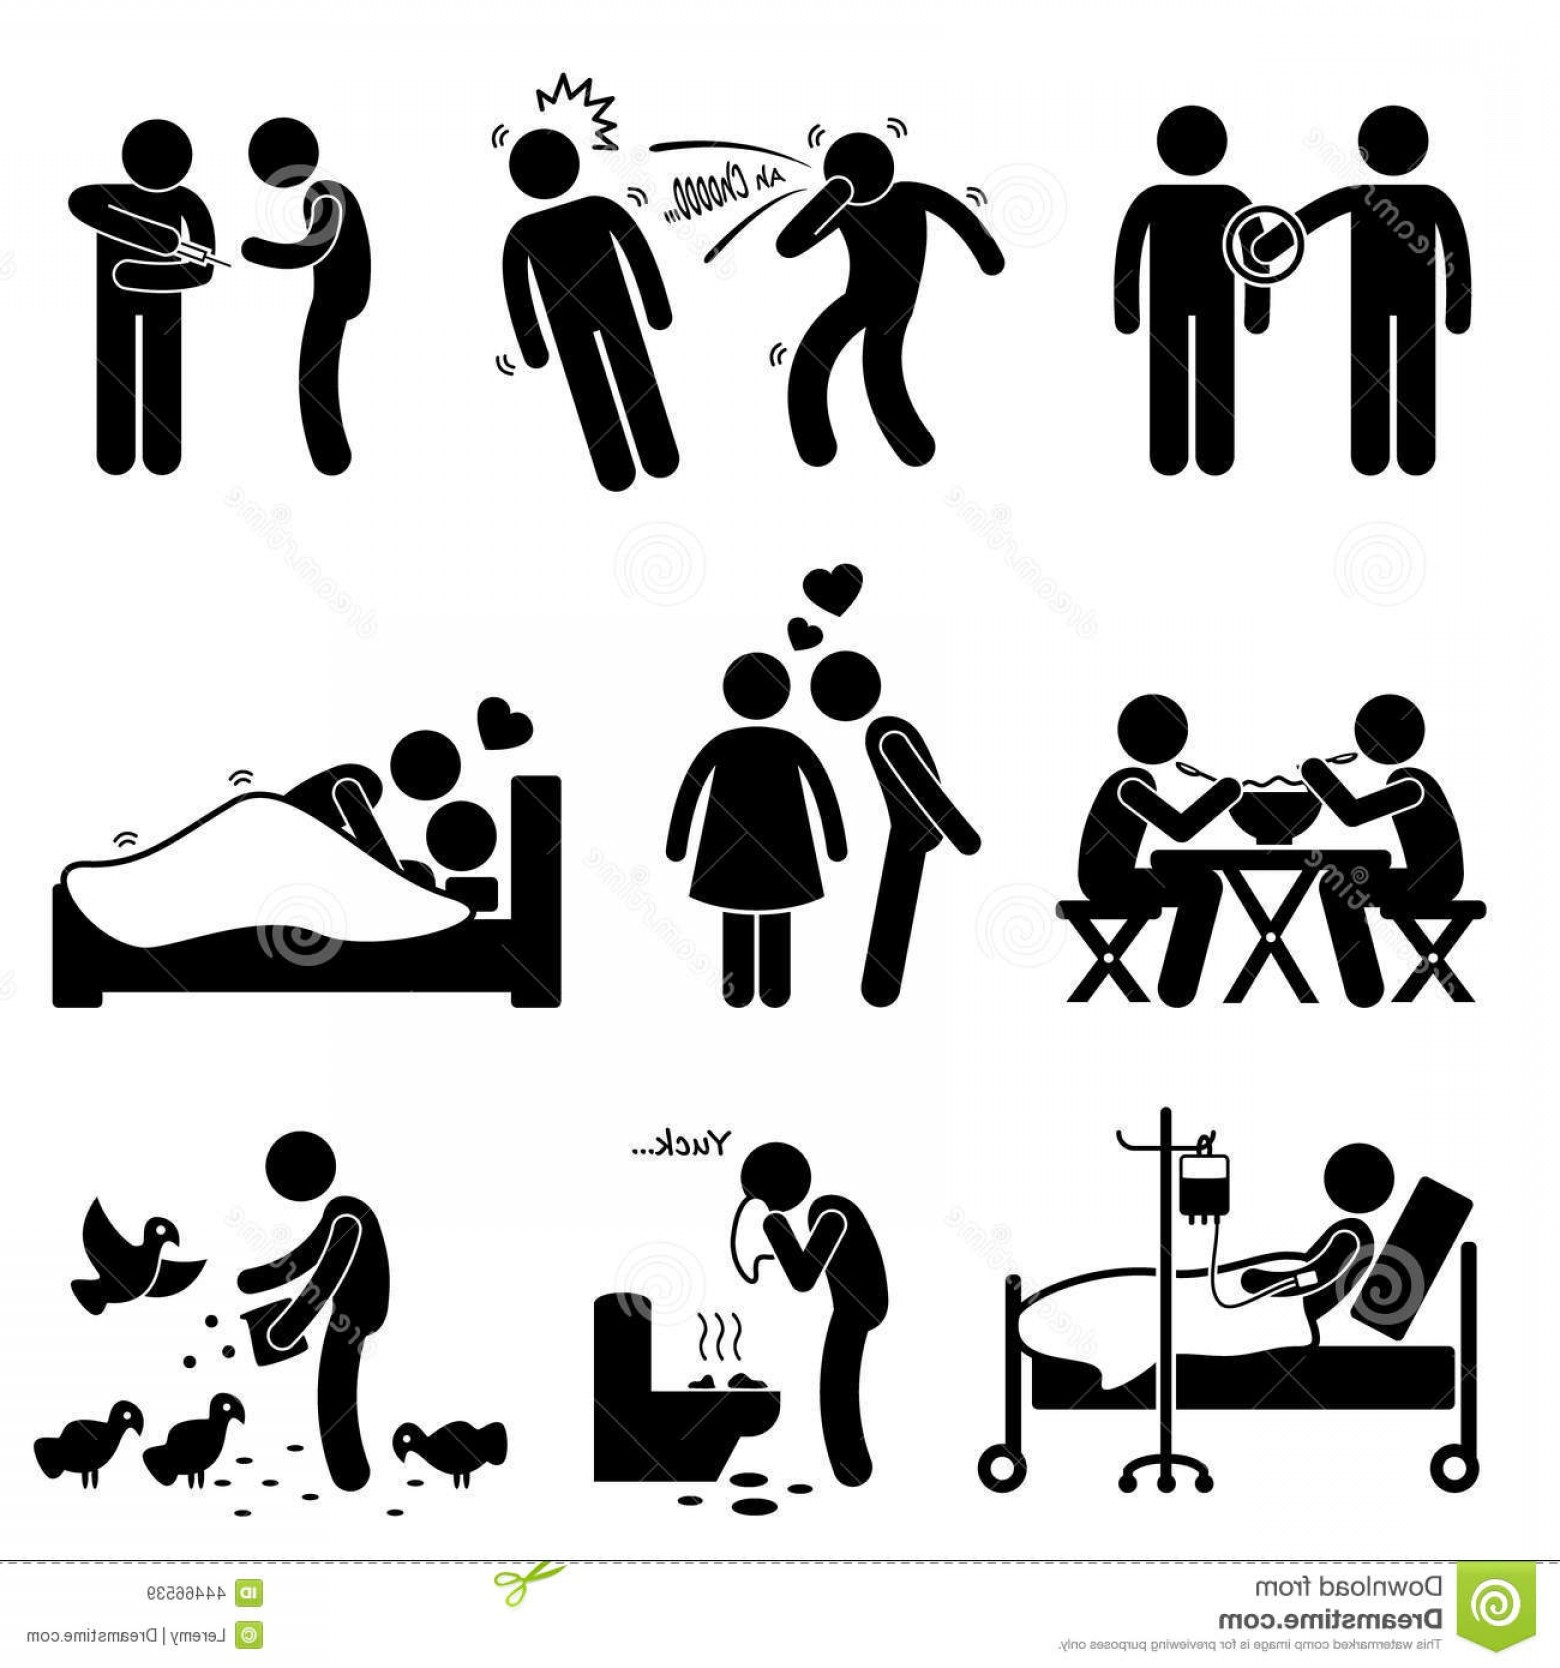 Vector -Borne Transmission Of Disease: Stock Illustration Virus Spread Diseases Transmission Infections Cliparts Set Human Pictogram Representing Ways Spreading One Image